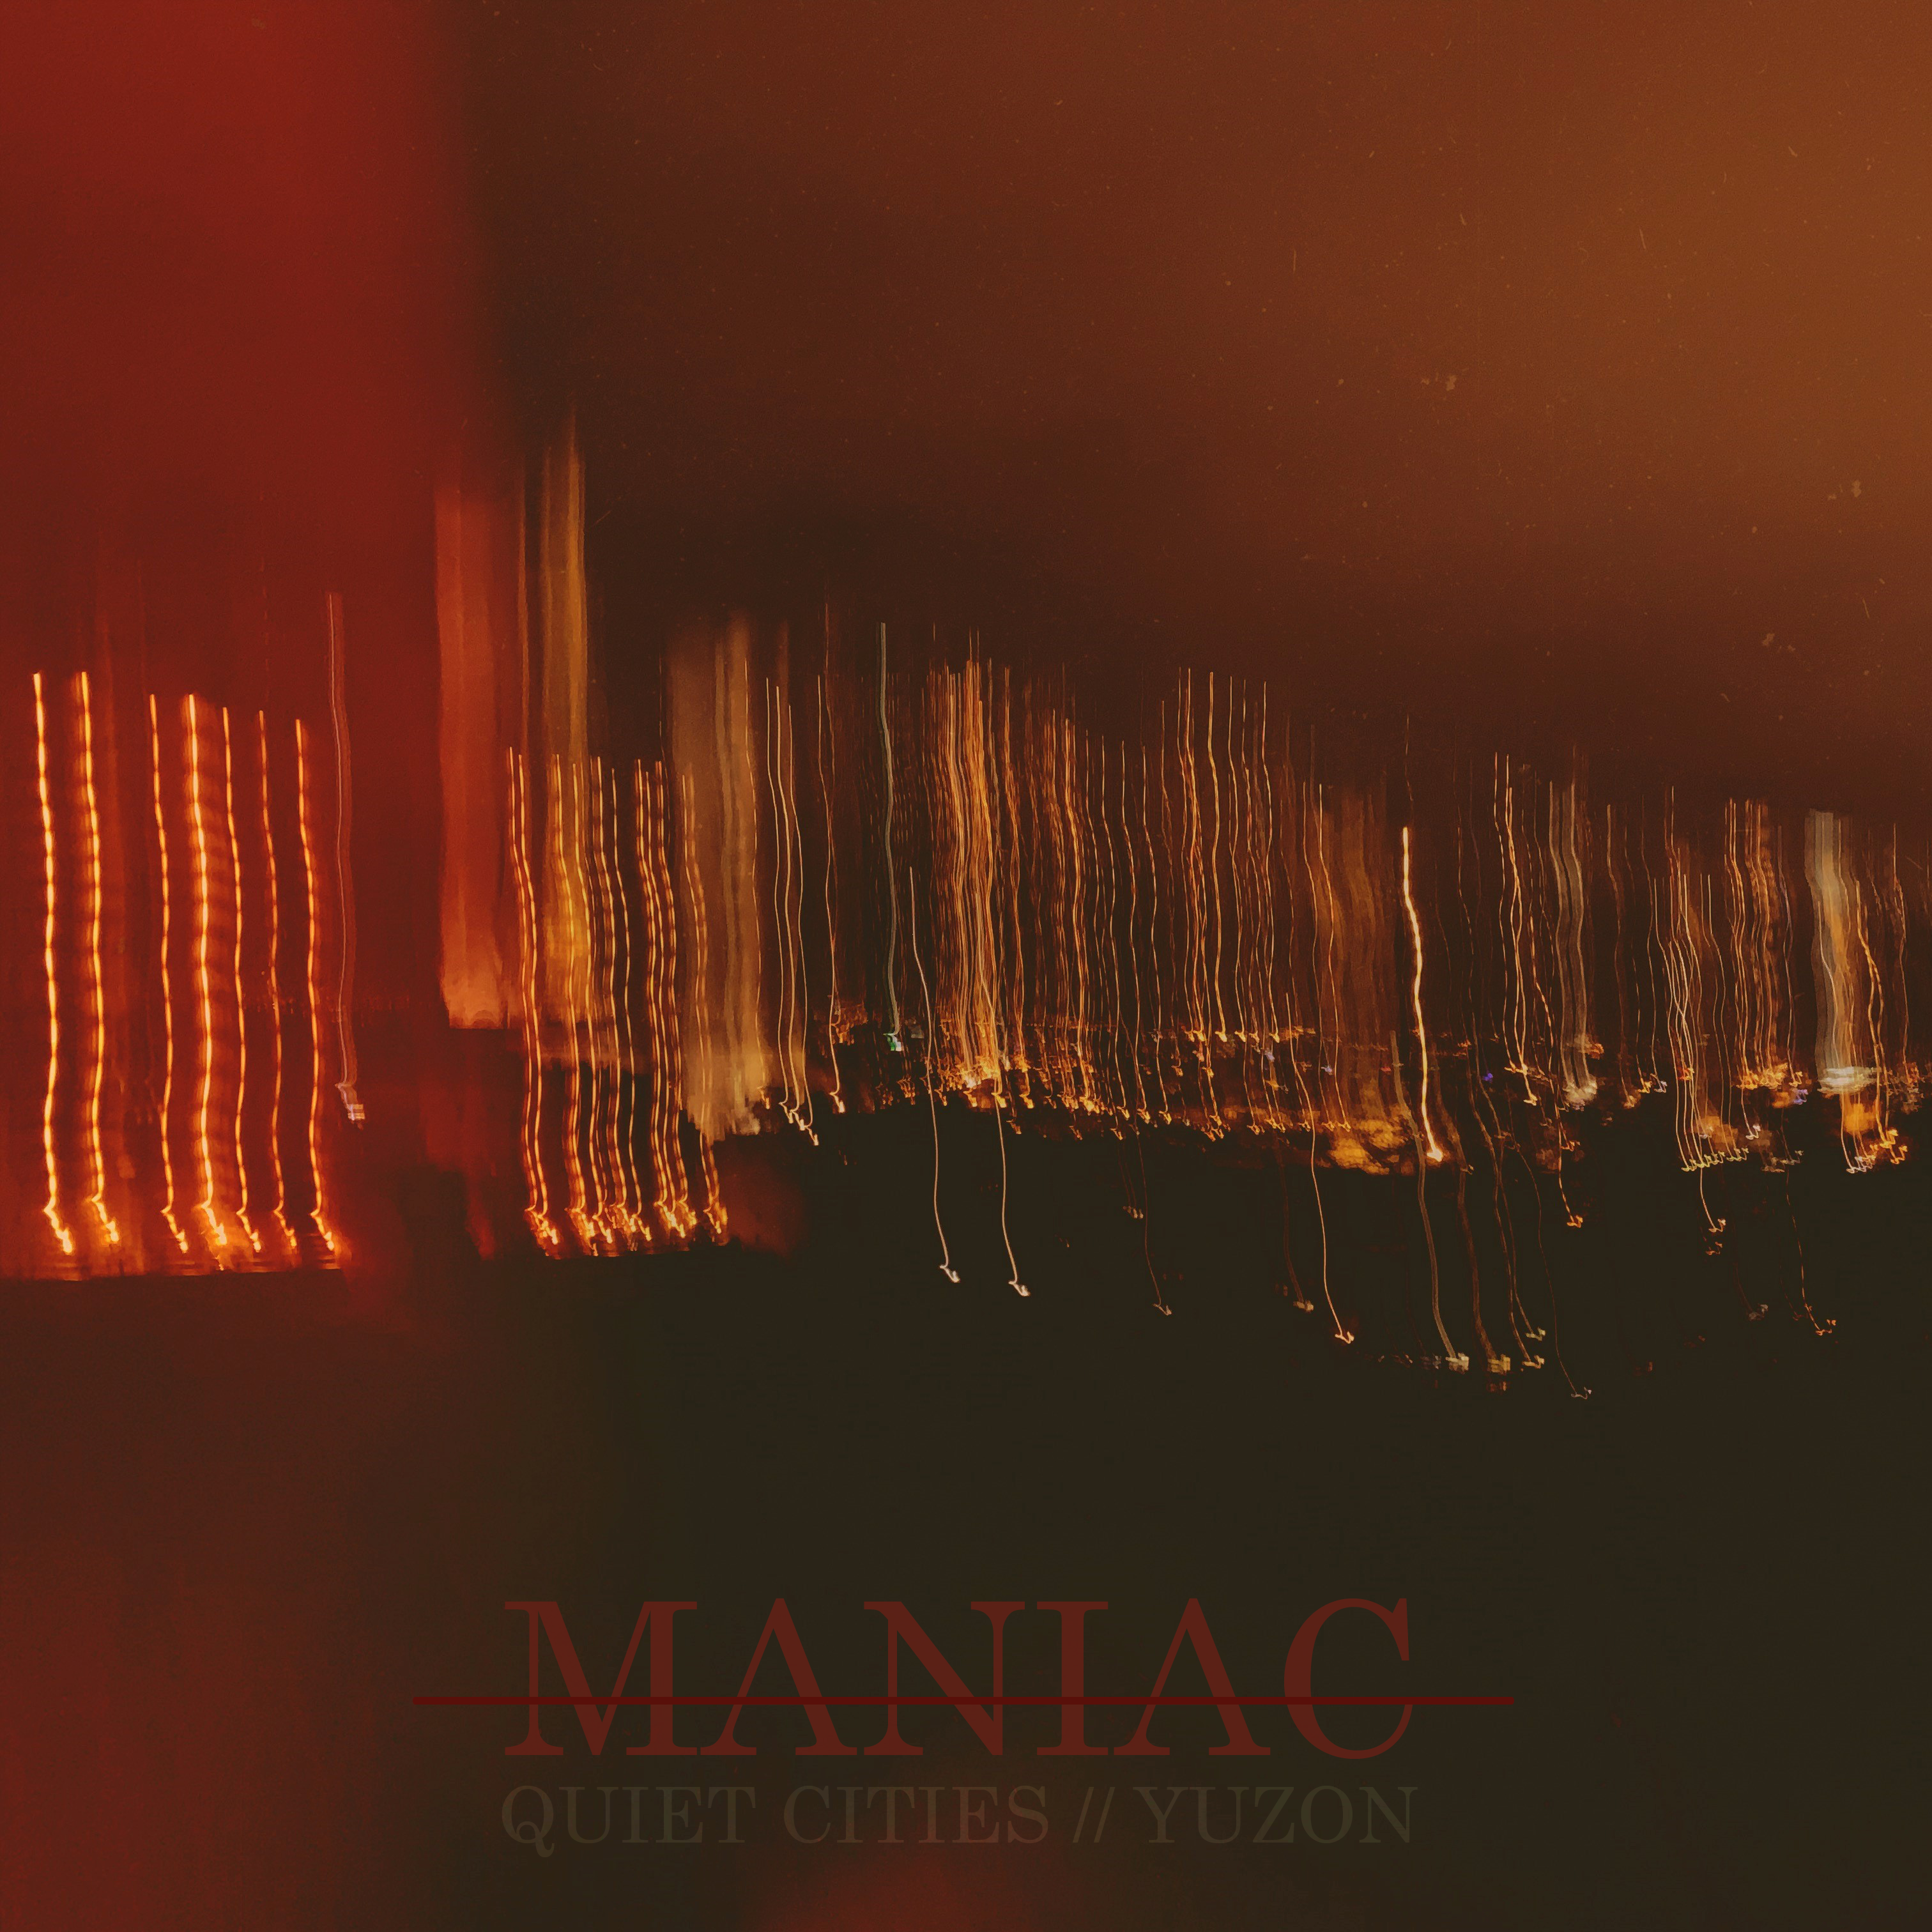 Maniac album art strikethrough